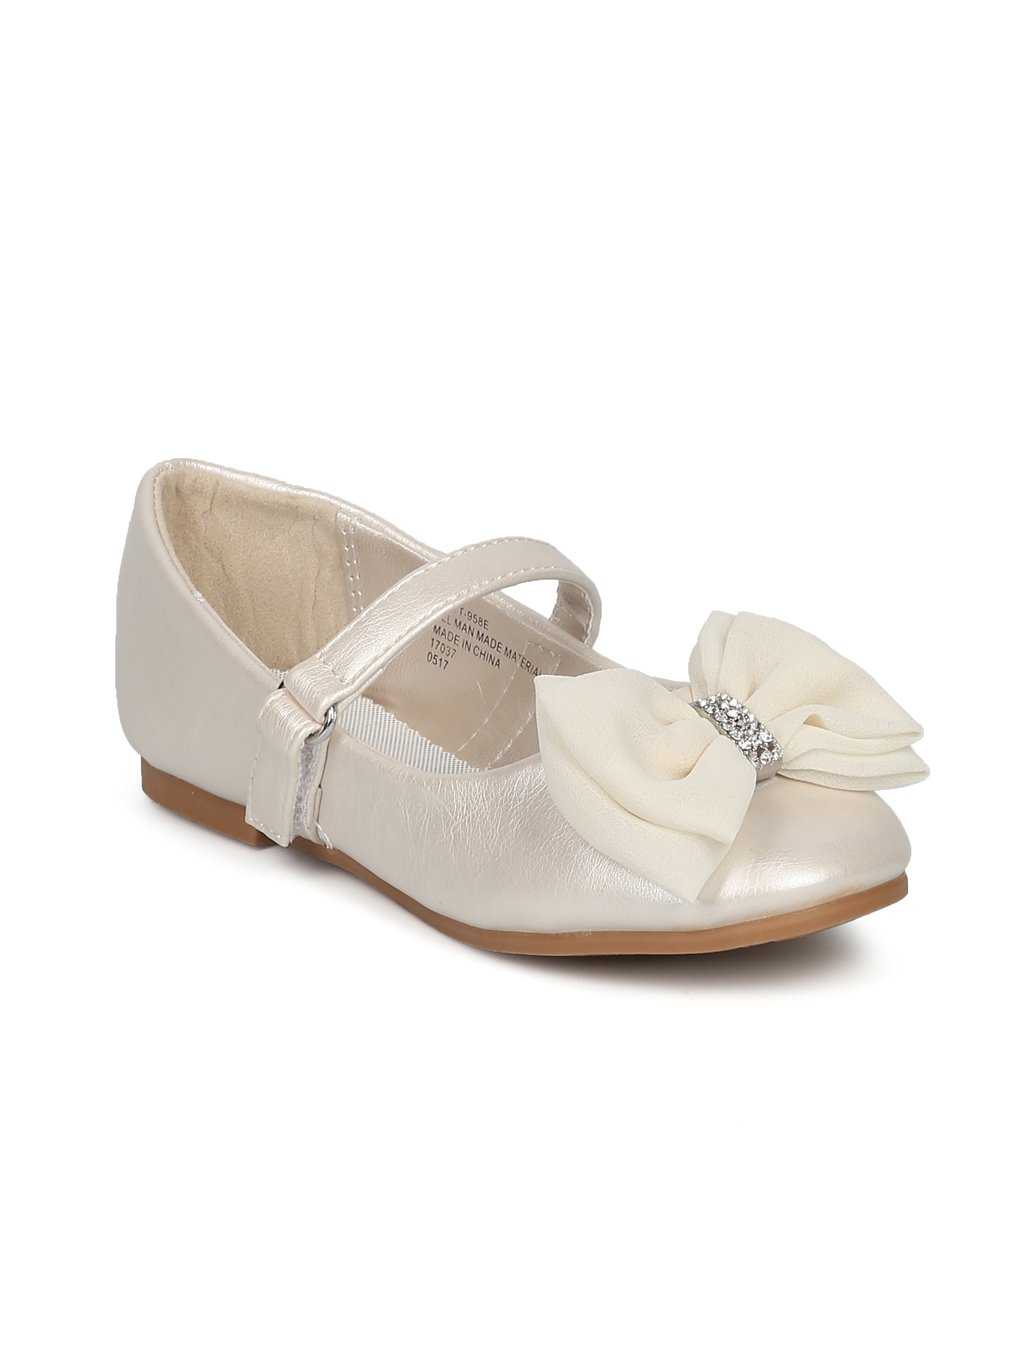 Alrisco Girls Bow Tie Mary Jane Ballerina Flat HE69 - Ivory Leatherette (Size: Toddler 8)